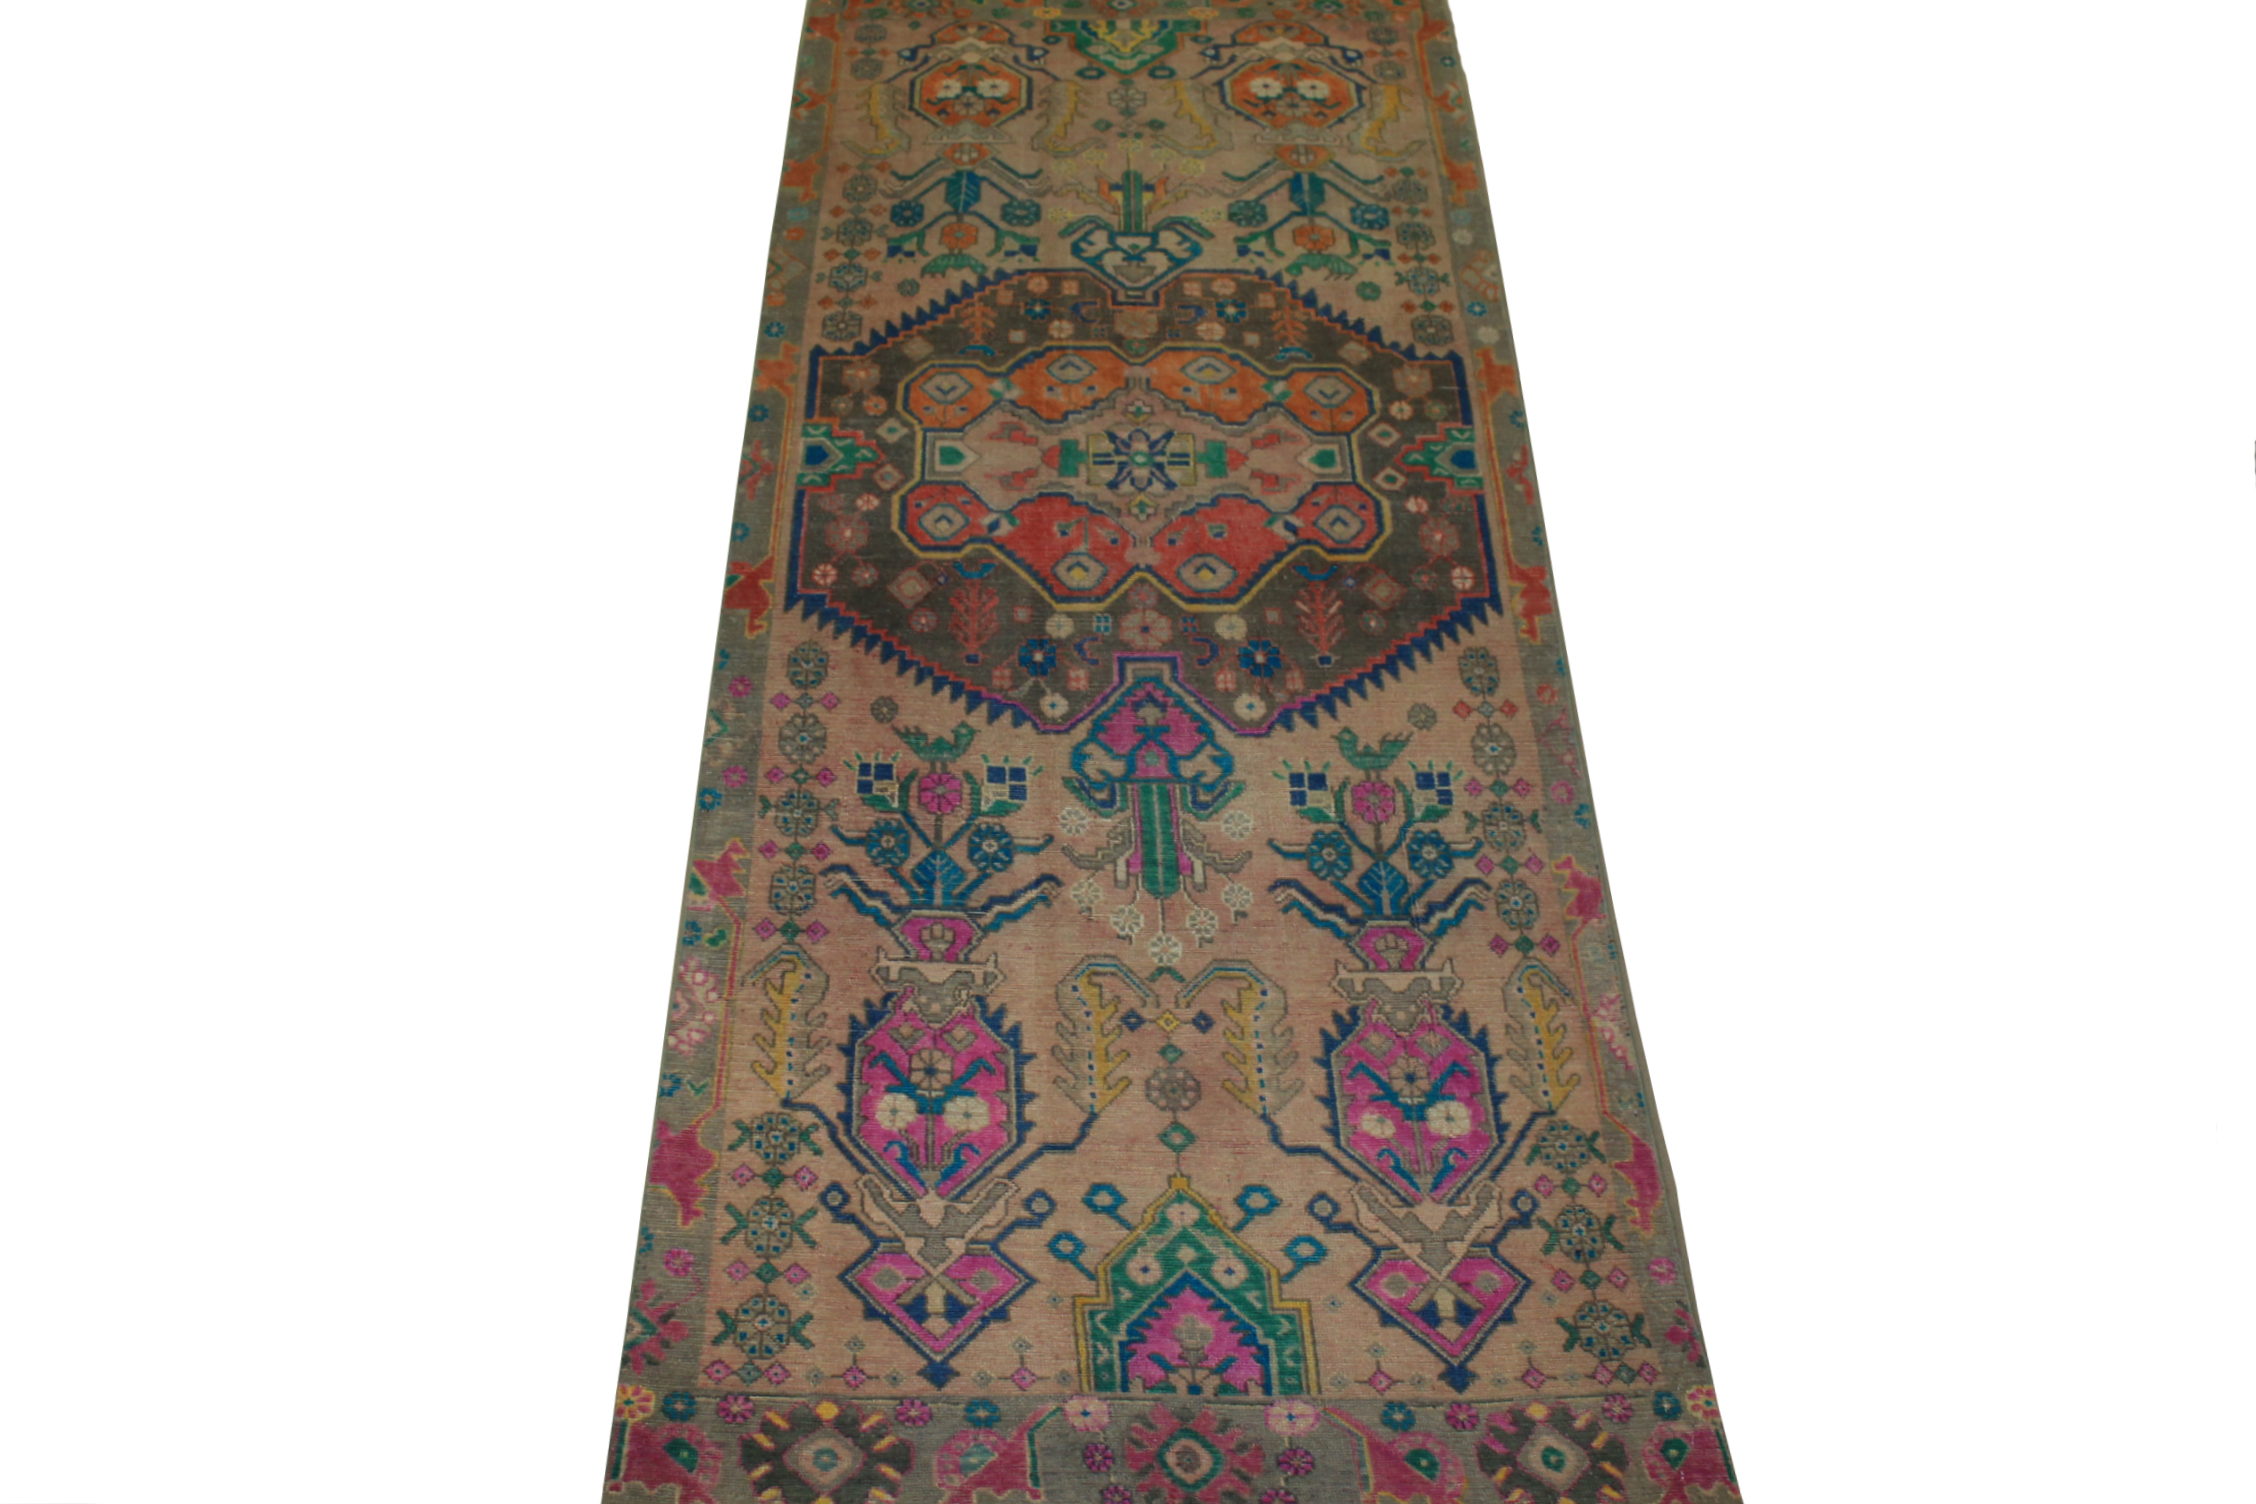 Wide Runner Vintage Hand Knotted Wool Area Rug - MR024465